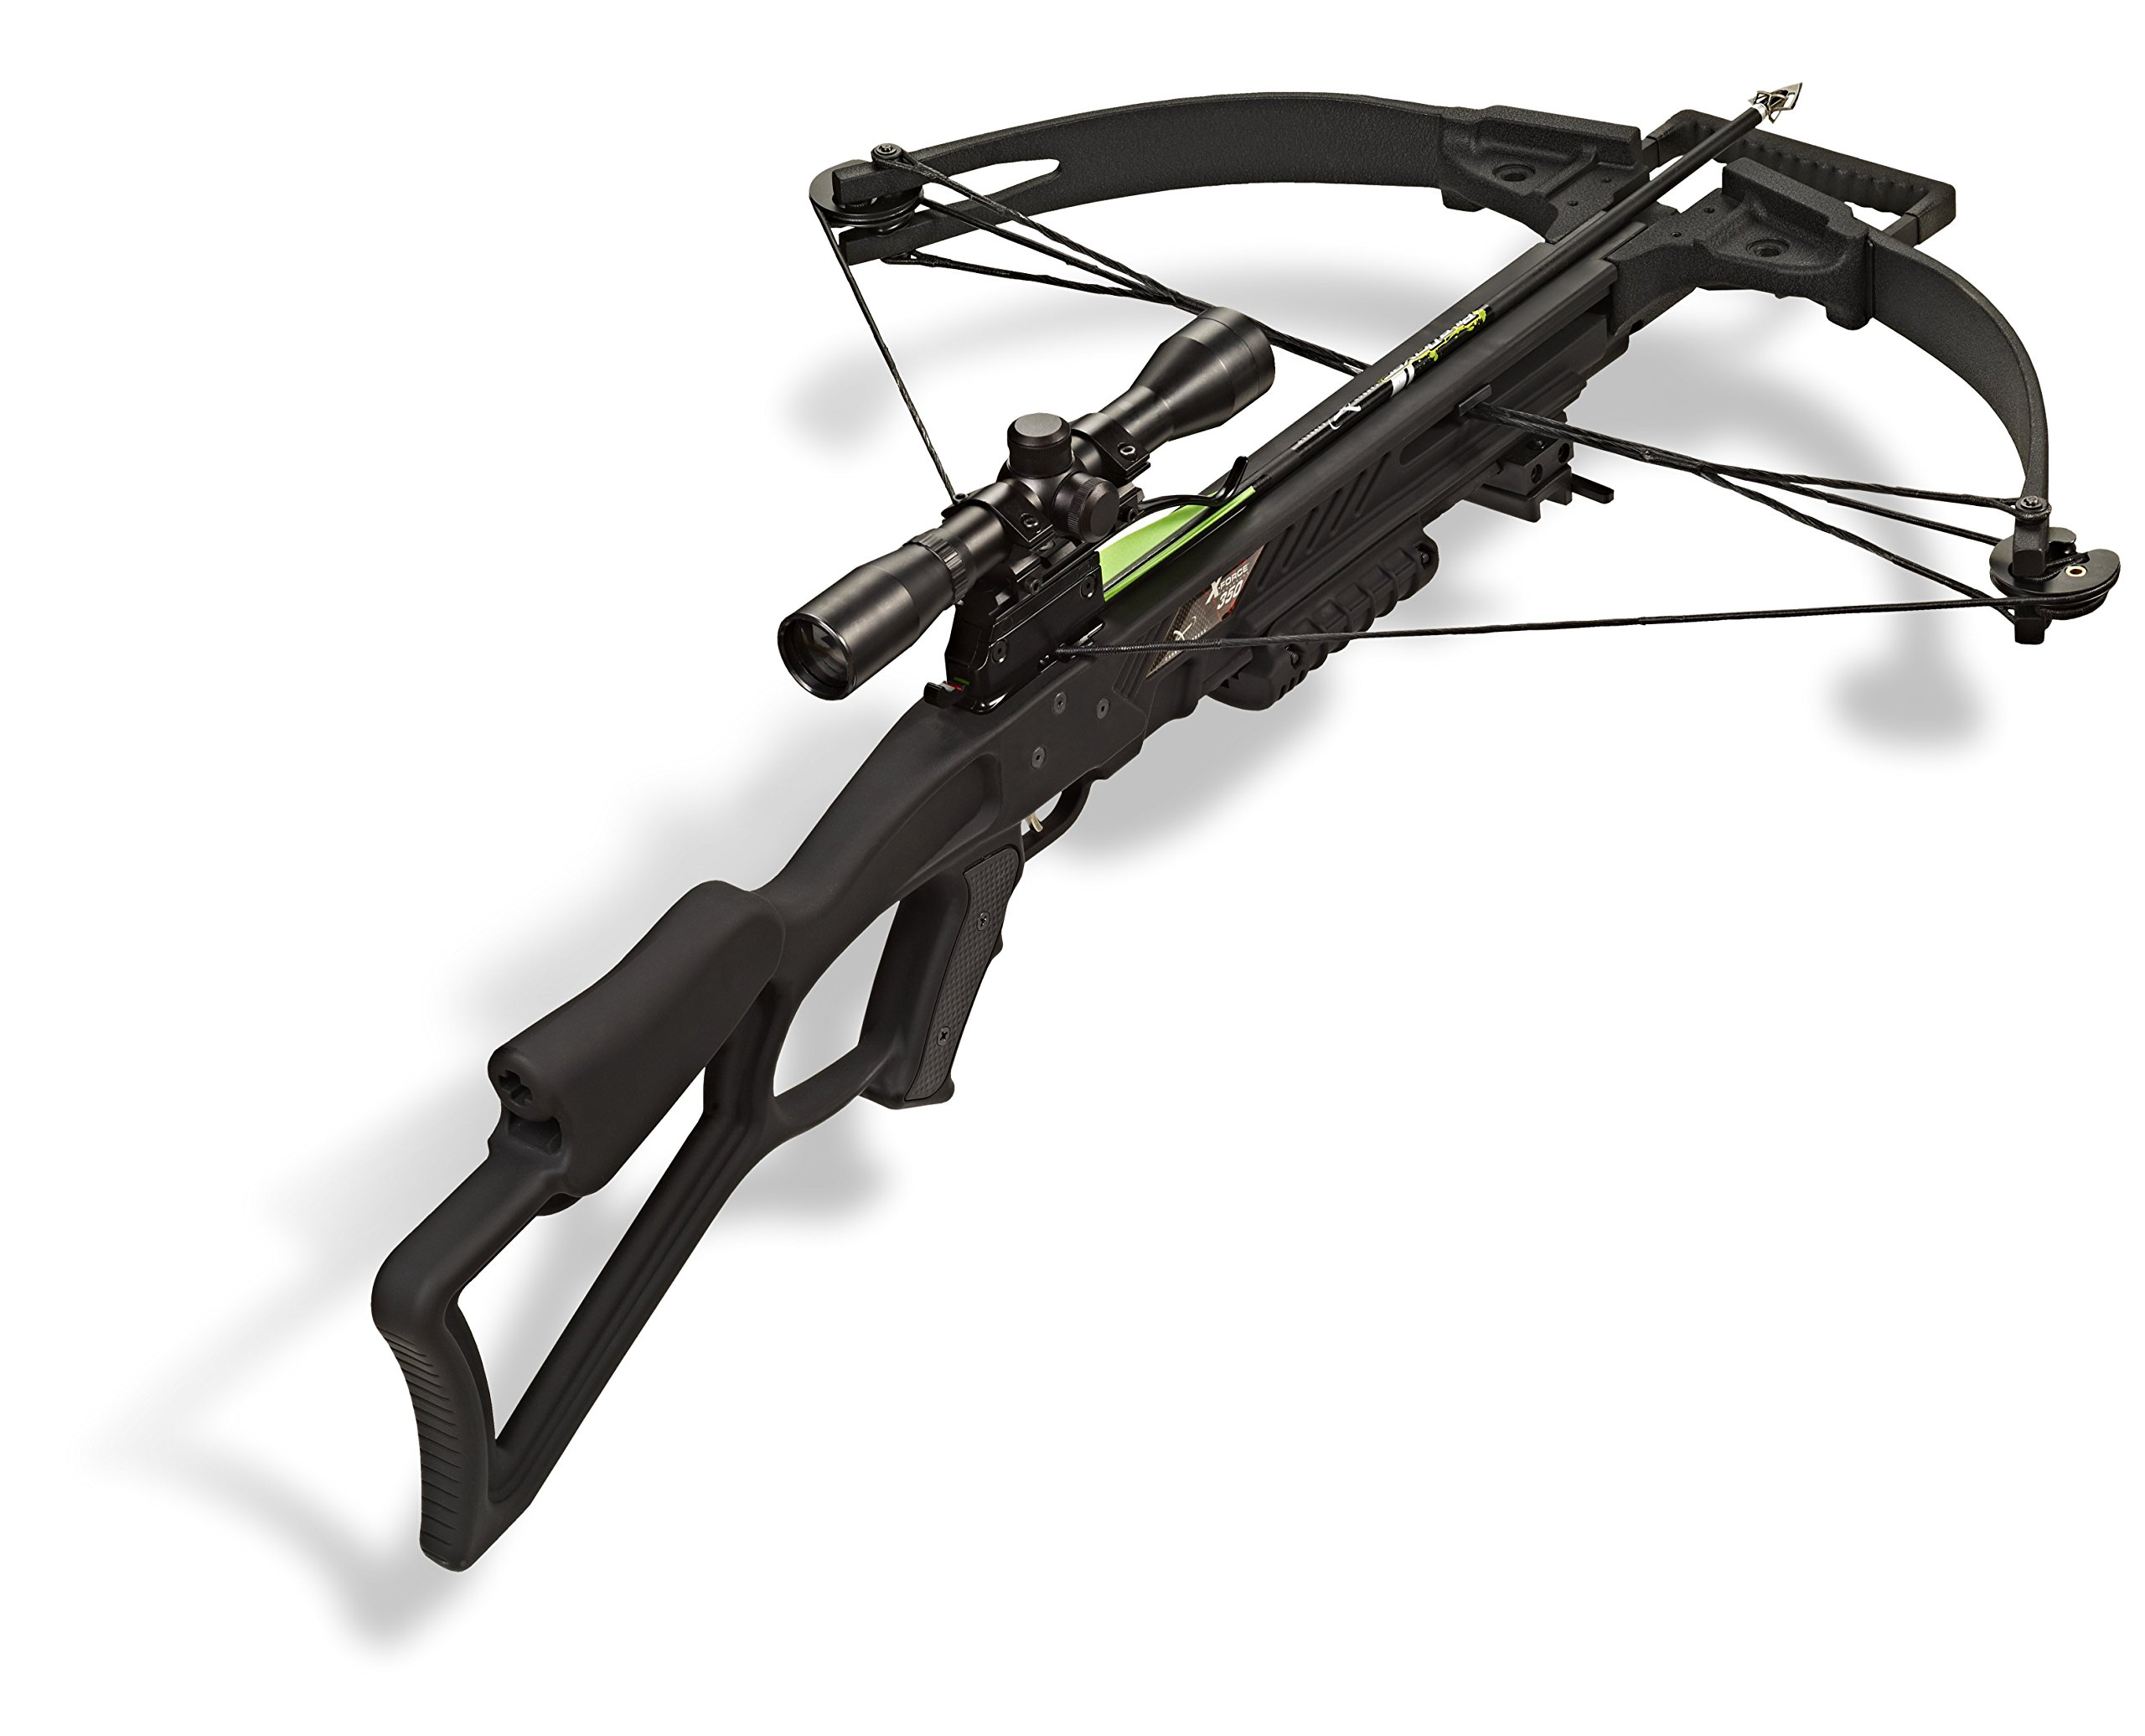 Carbon Express 20271 X-Force 350 Crossbow Kit (Rope Cocker, 3 Arrow Quiver, 3 Crossbolts, Rail Lubricant, 3 Practice Points, 4x32 Scope), Black by Carbon Express (Image #4)